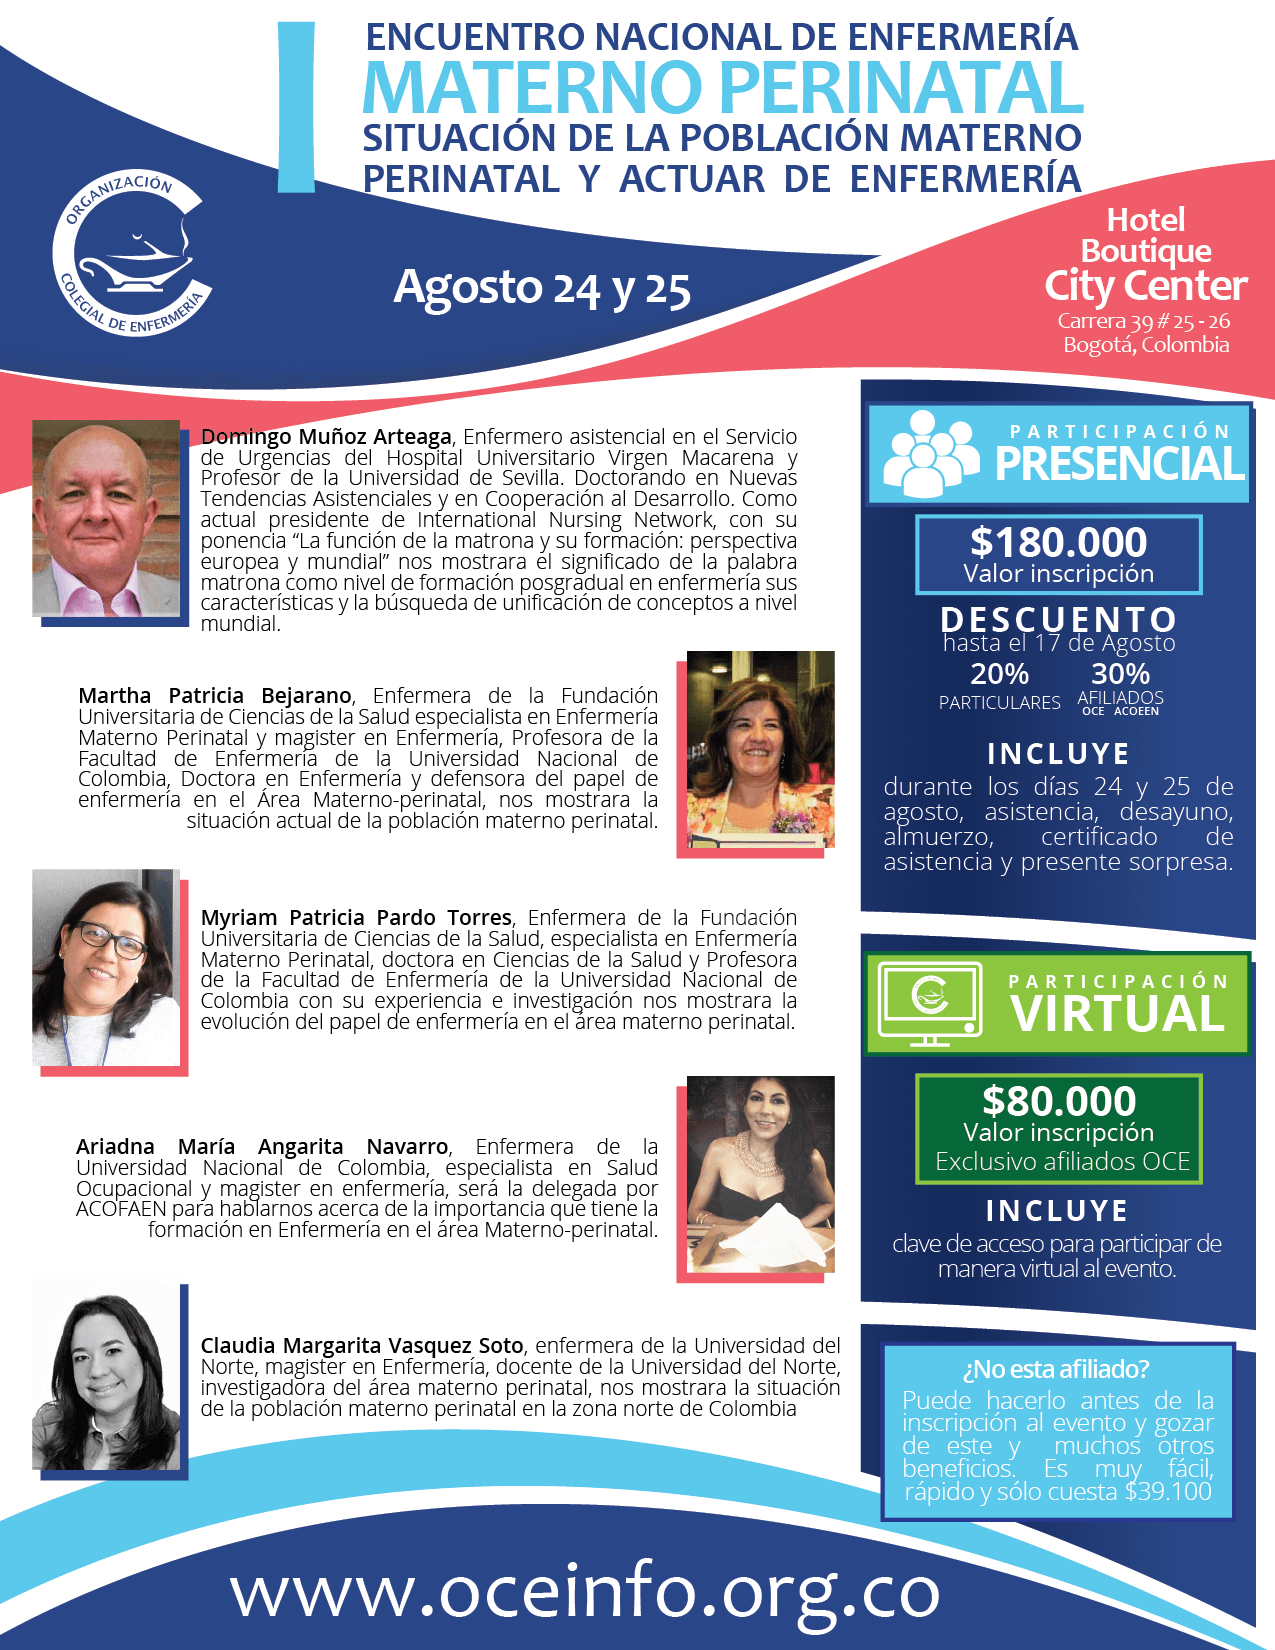 2018 08 03 EVENTO PERINATAL CARTA INSCRIPCION 01